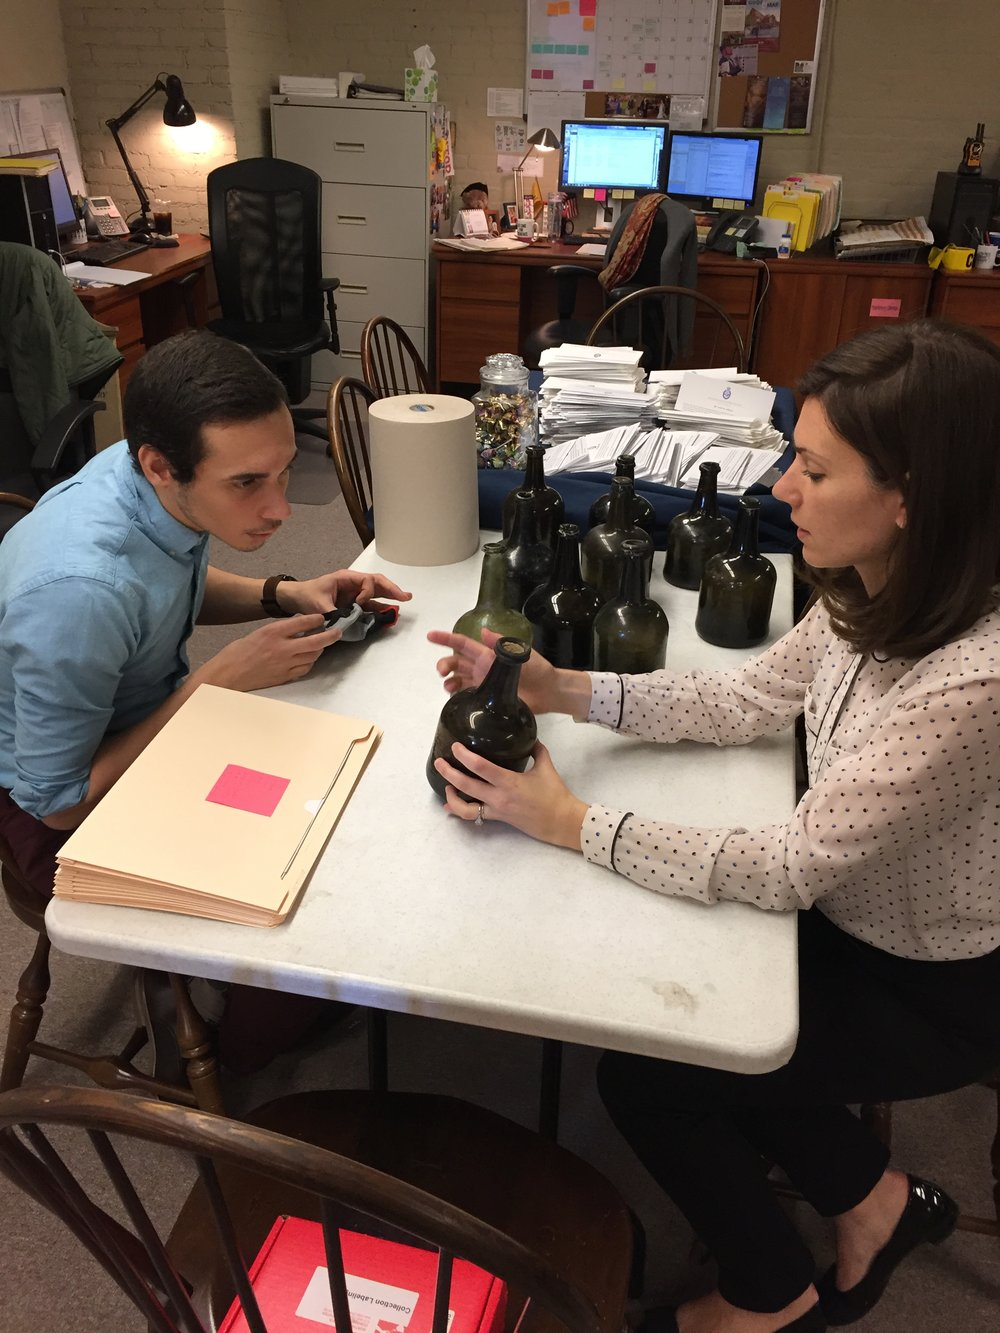 Curator Jessica Phillips and curatorial intern eli mcclain prepare to catalogue the collection.